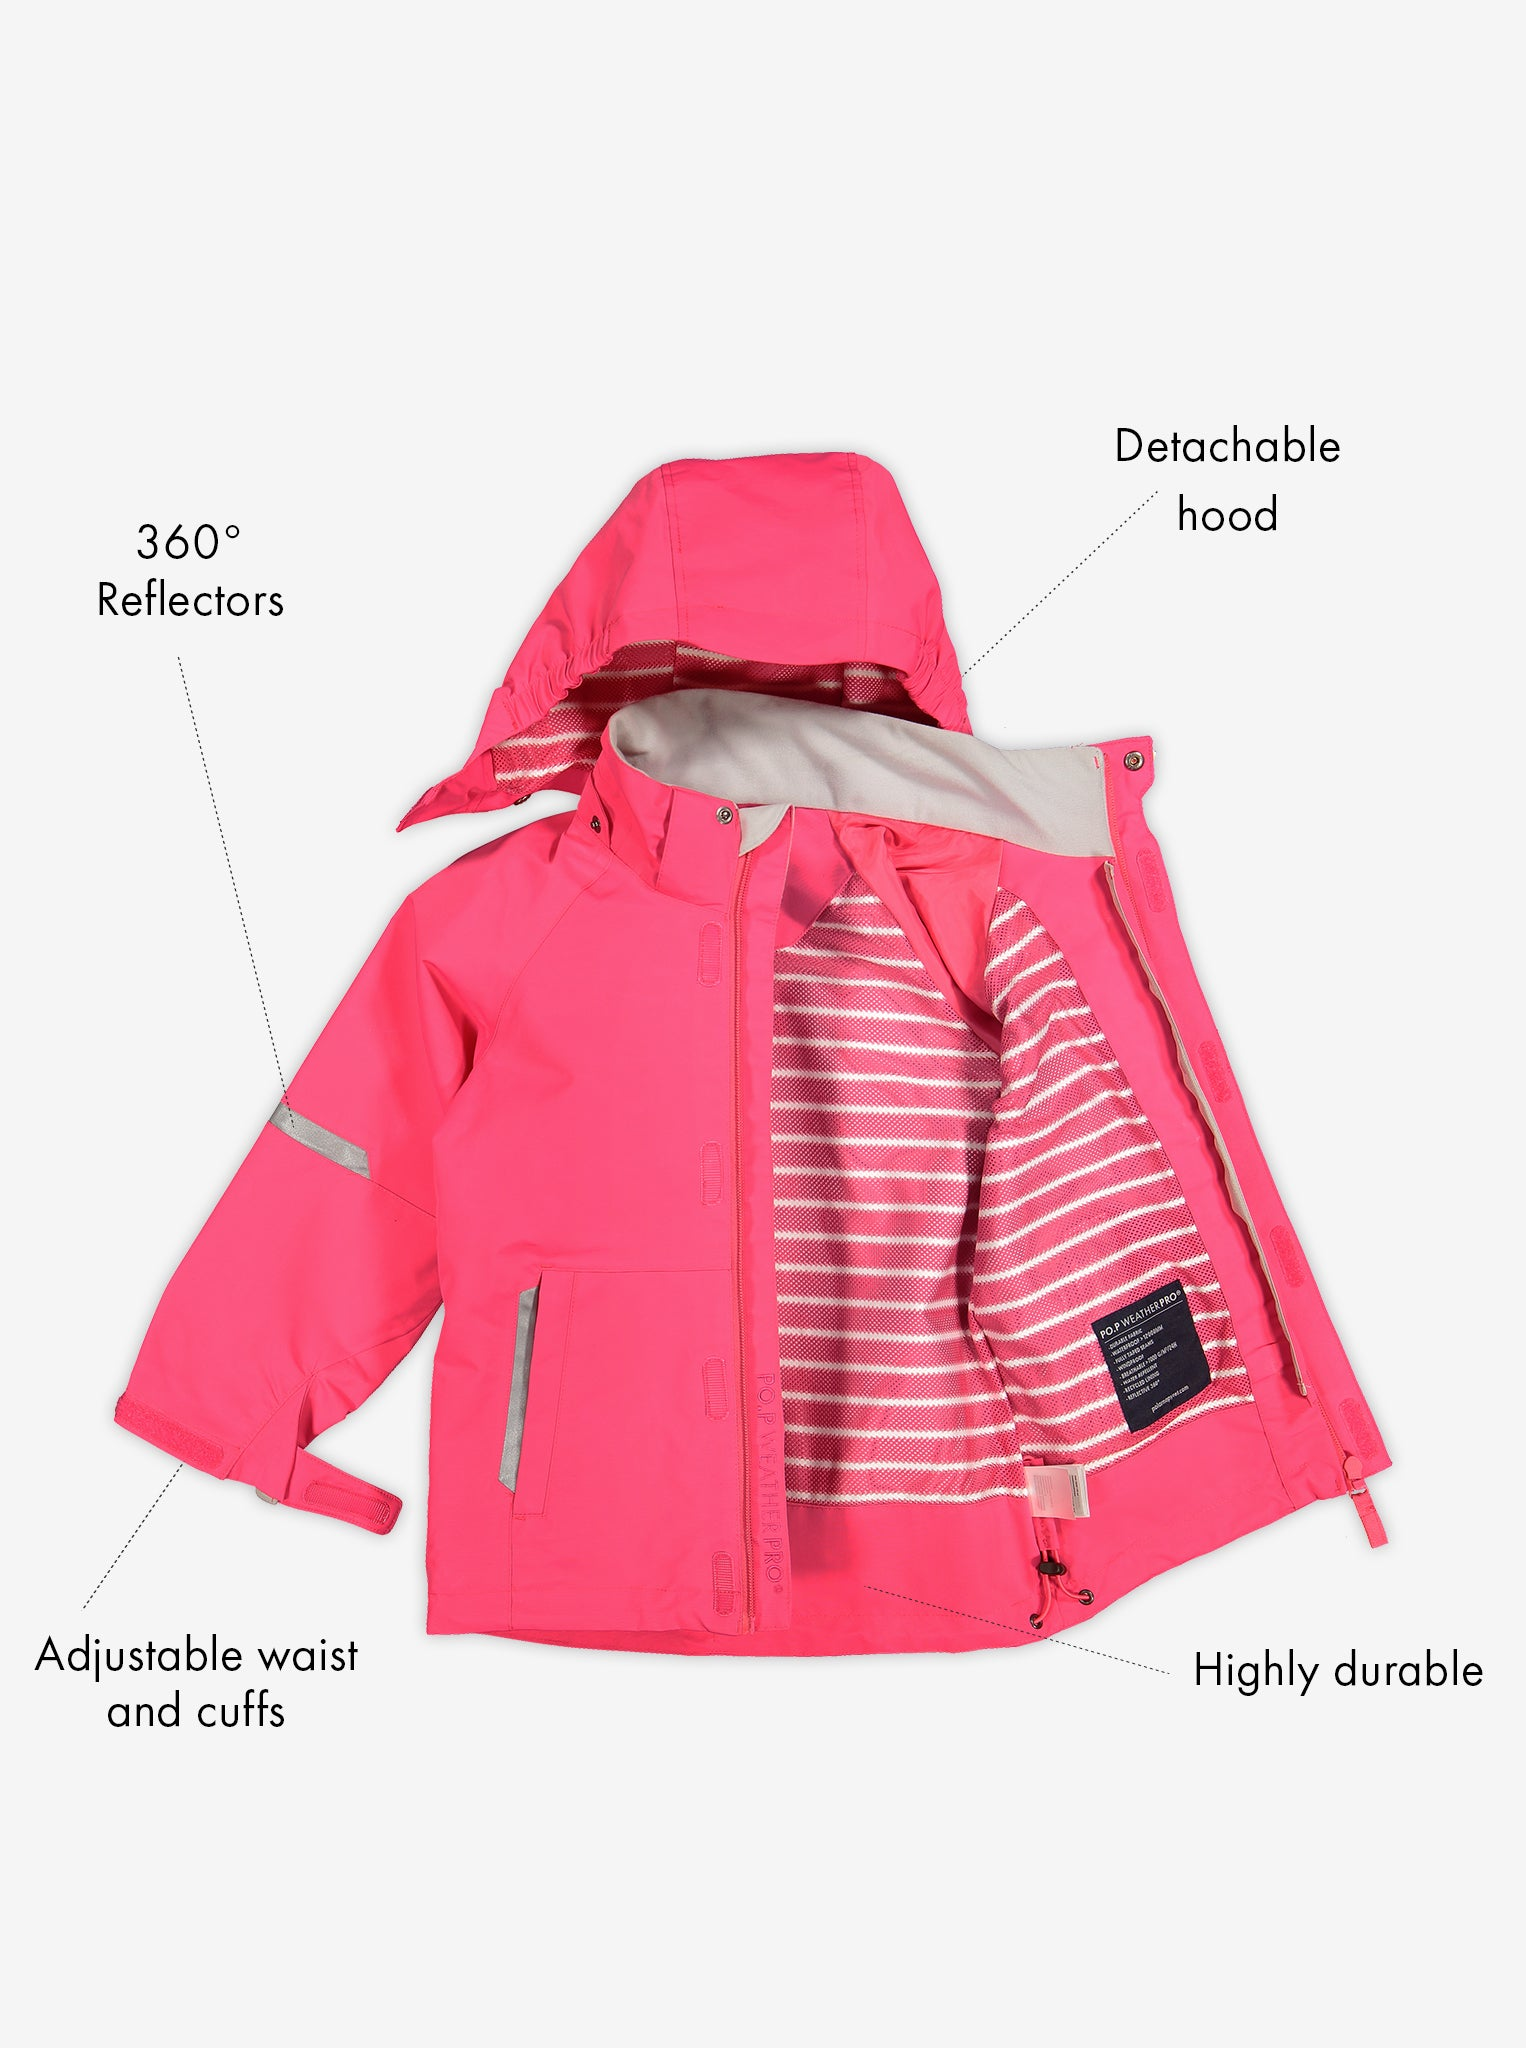 Pink, kids waterproof jacket with detachable hood, reflectors, adjustable waist and cuffs, made of durable shell fabric.